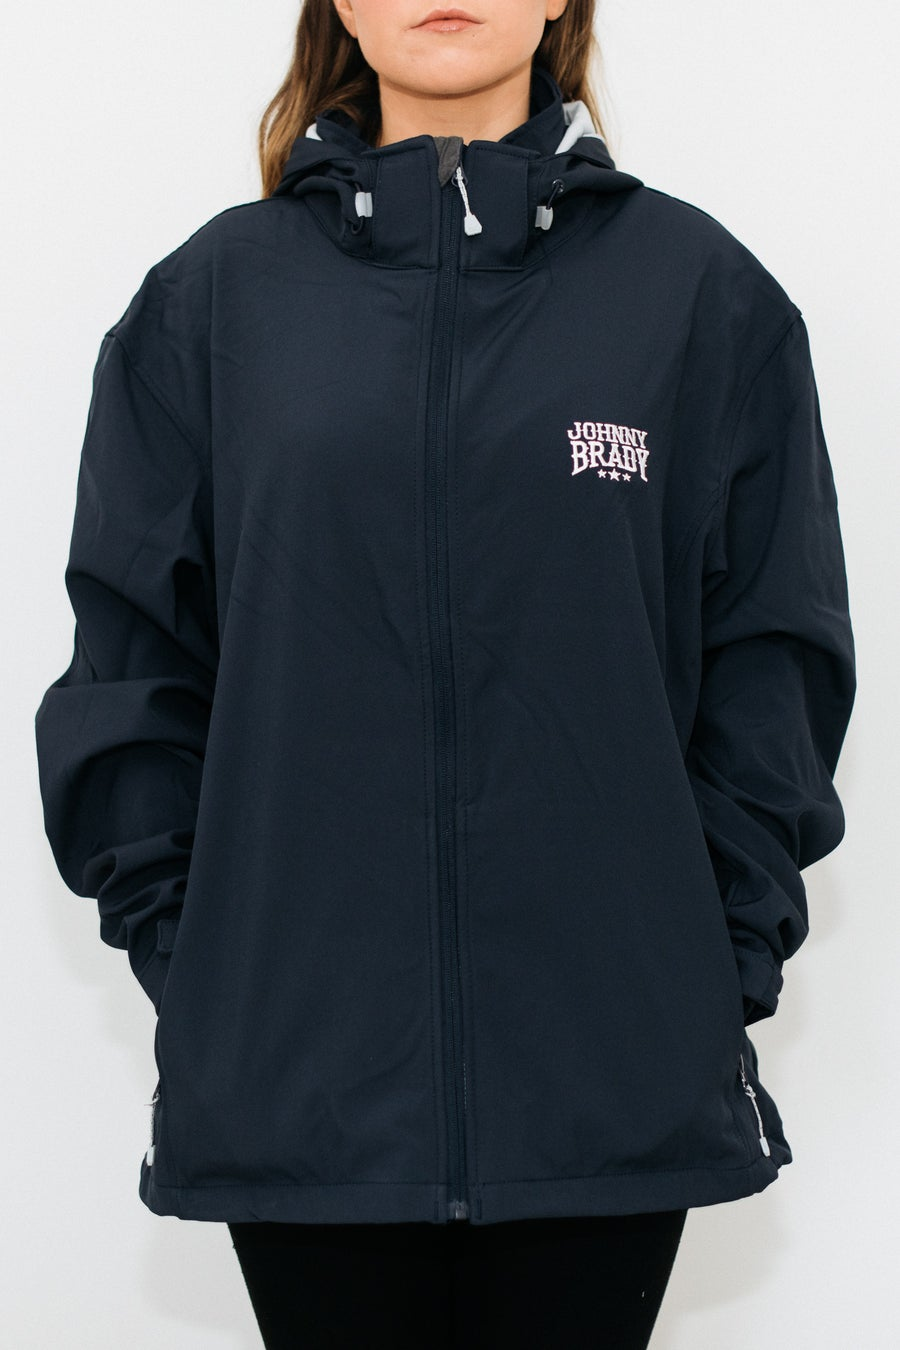 Image of Official Unisex Jacket (Navy)